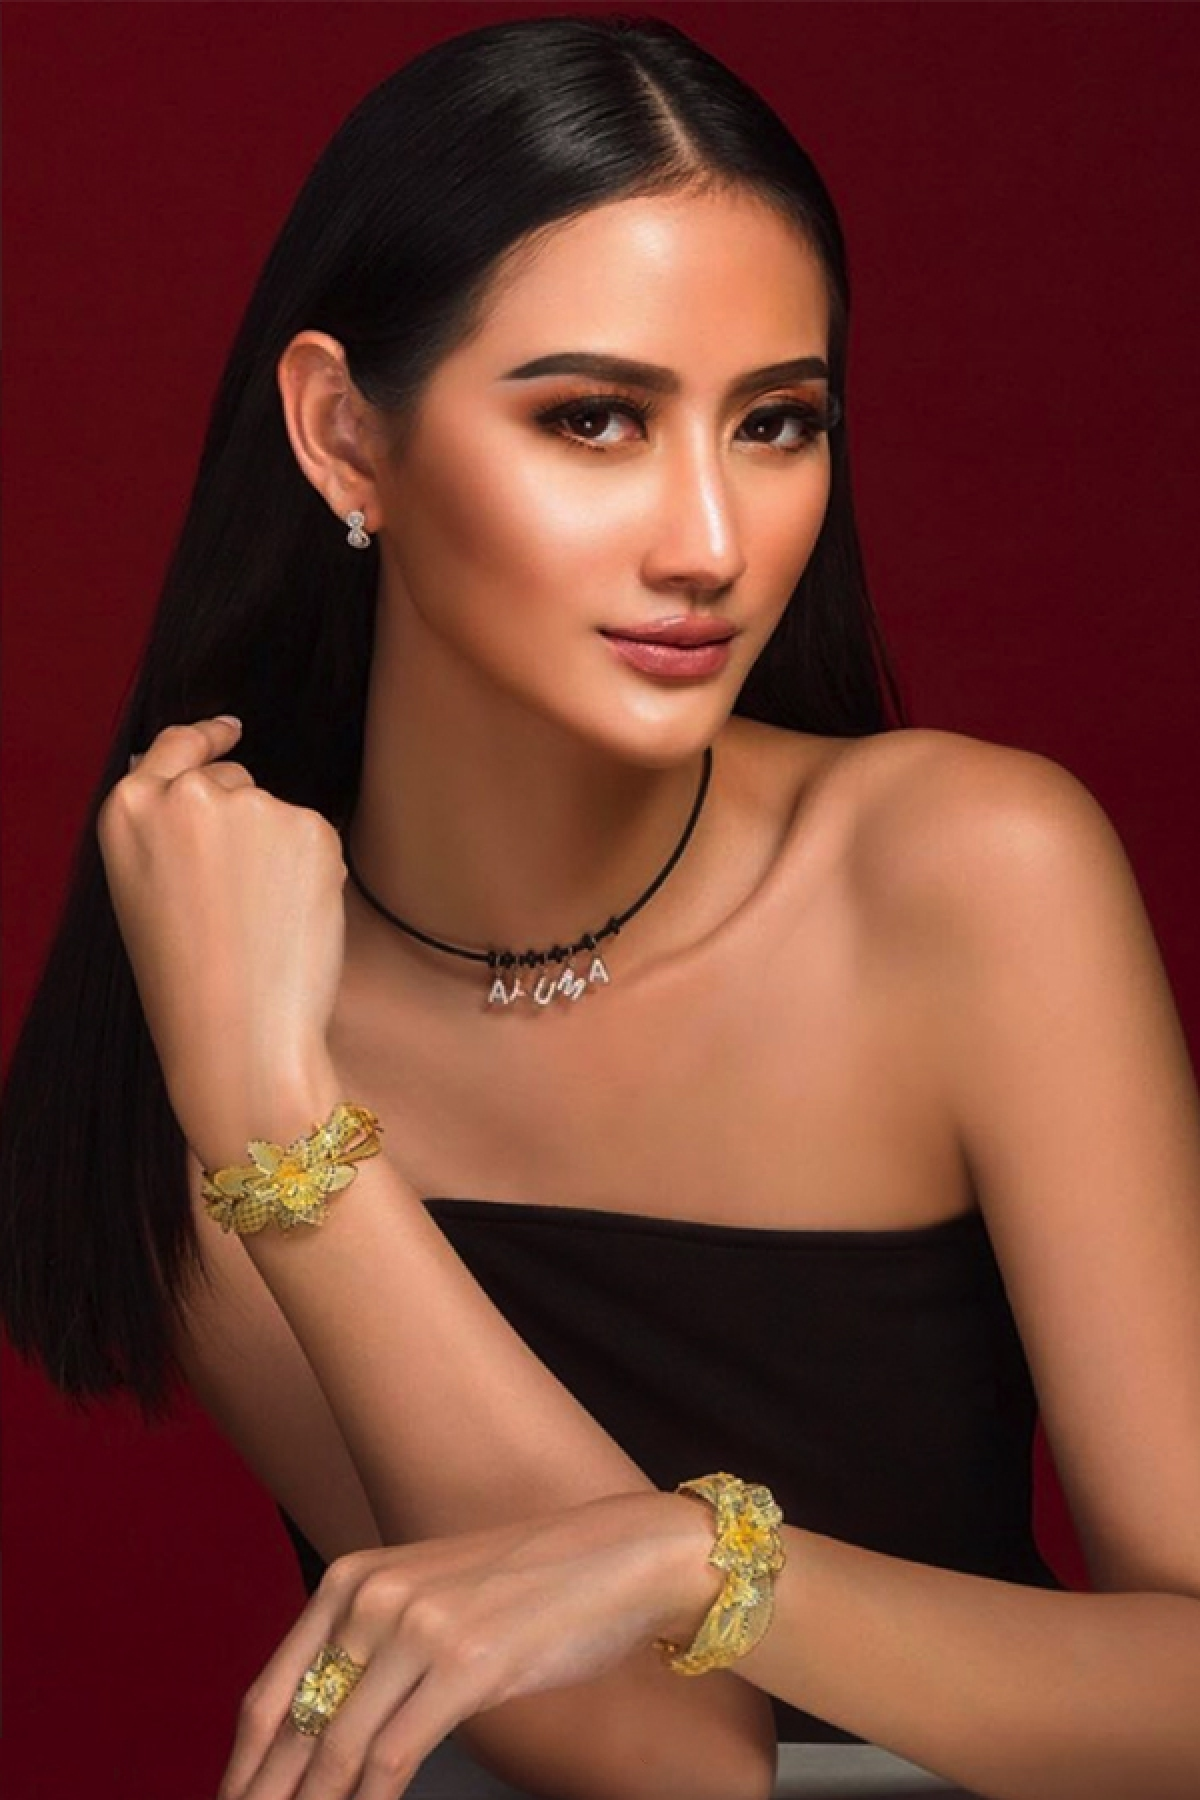 Ayu Maulida, 22, of Indonesia, stands at 1.78 metres tall and currently works as a model. She is going into the competition with a strong background, having already received praise from renowned beauty websites such as Missosology and Angelopedia. (Photo: Instagram Ayu Maulida)